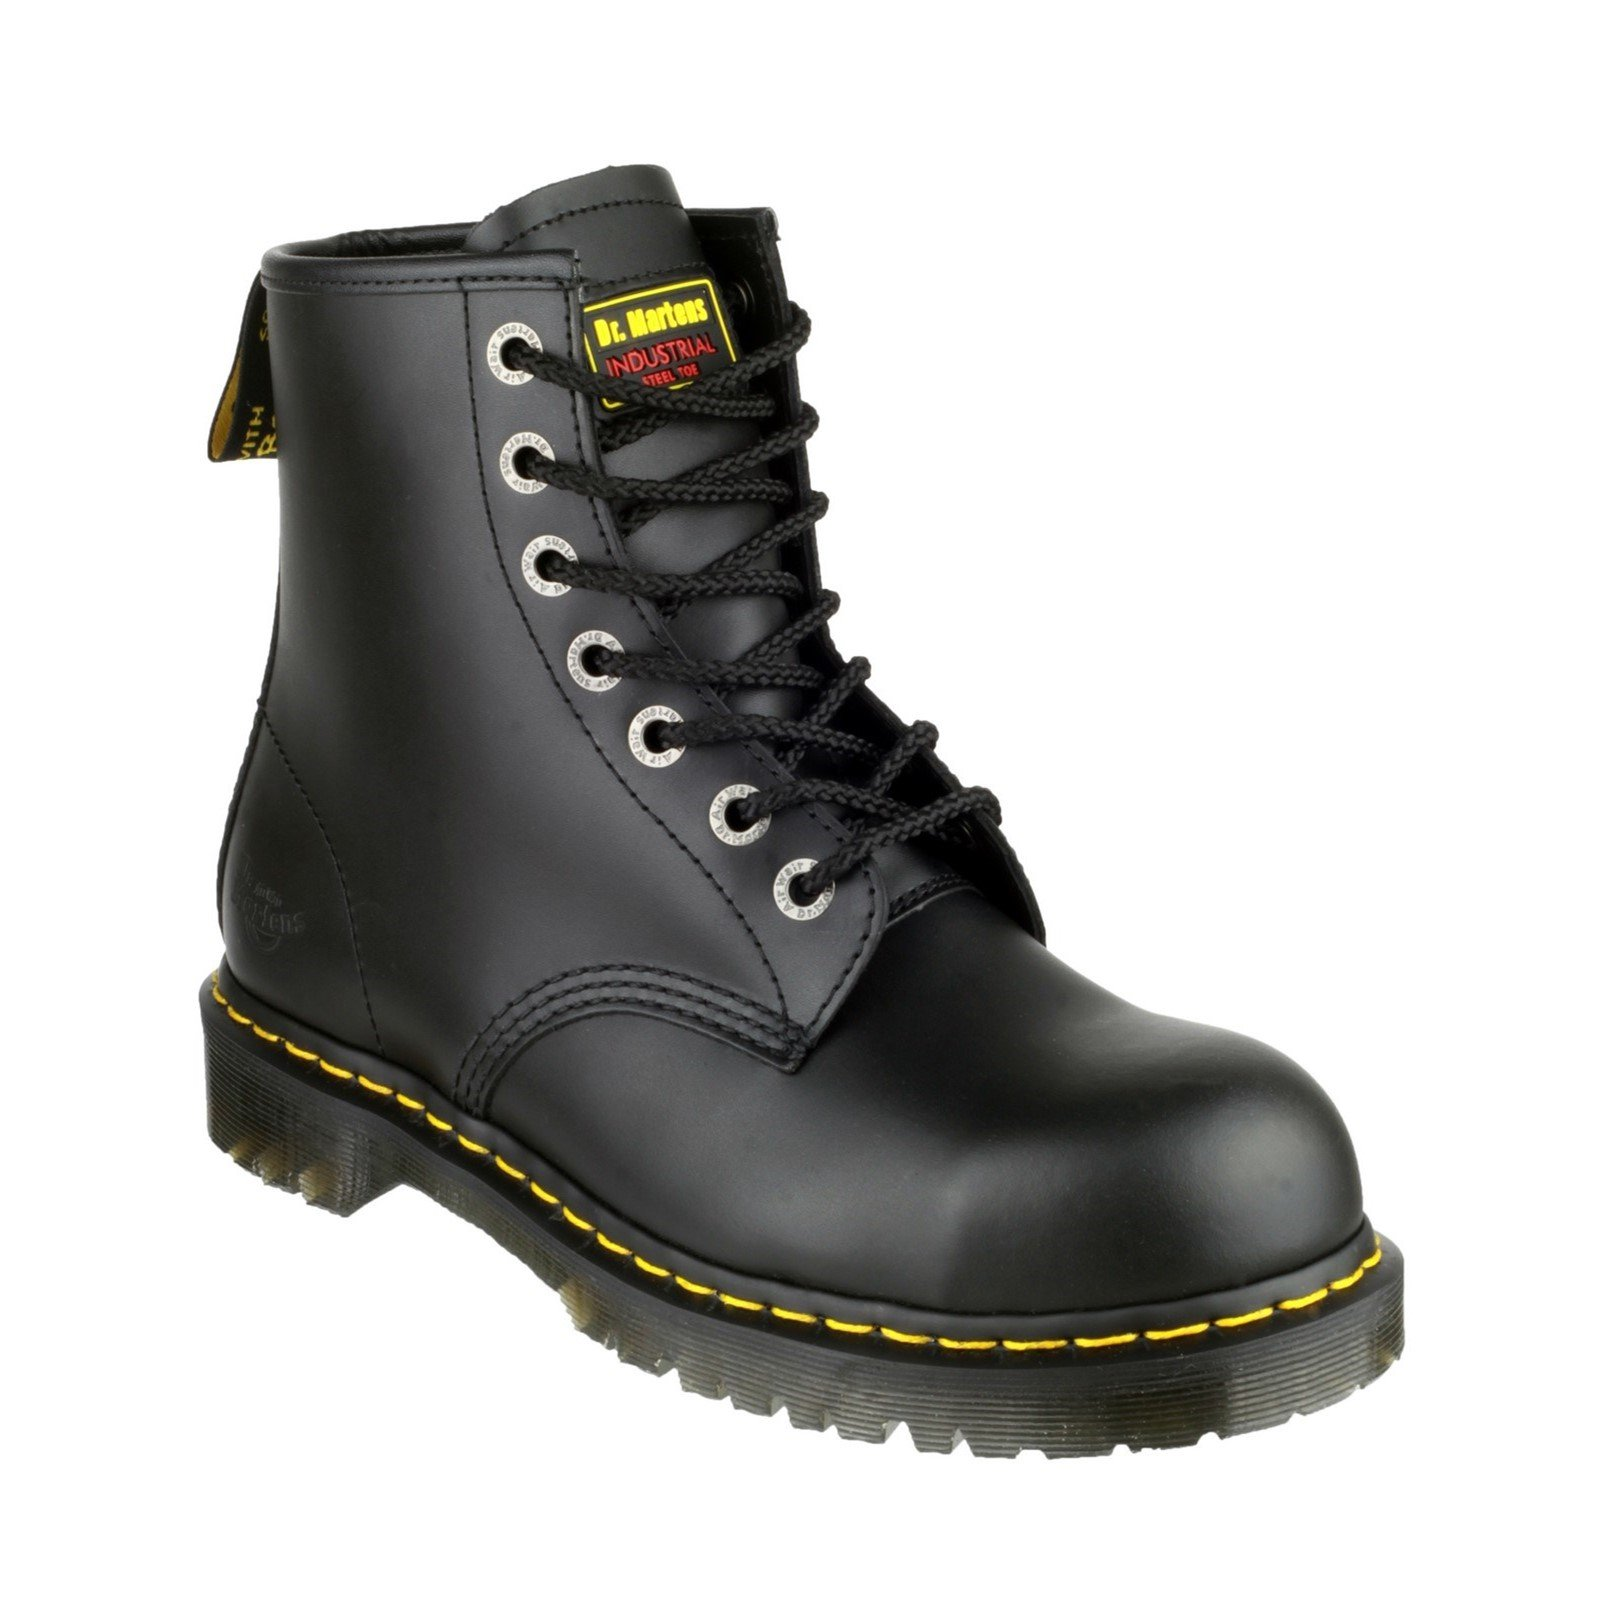 Dr Martens Unisex Icon Lace up Safety Boot Black 19498 - Black 4